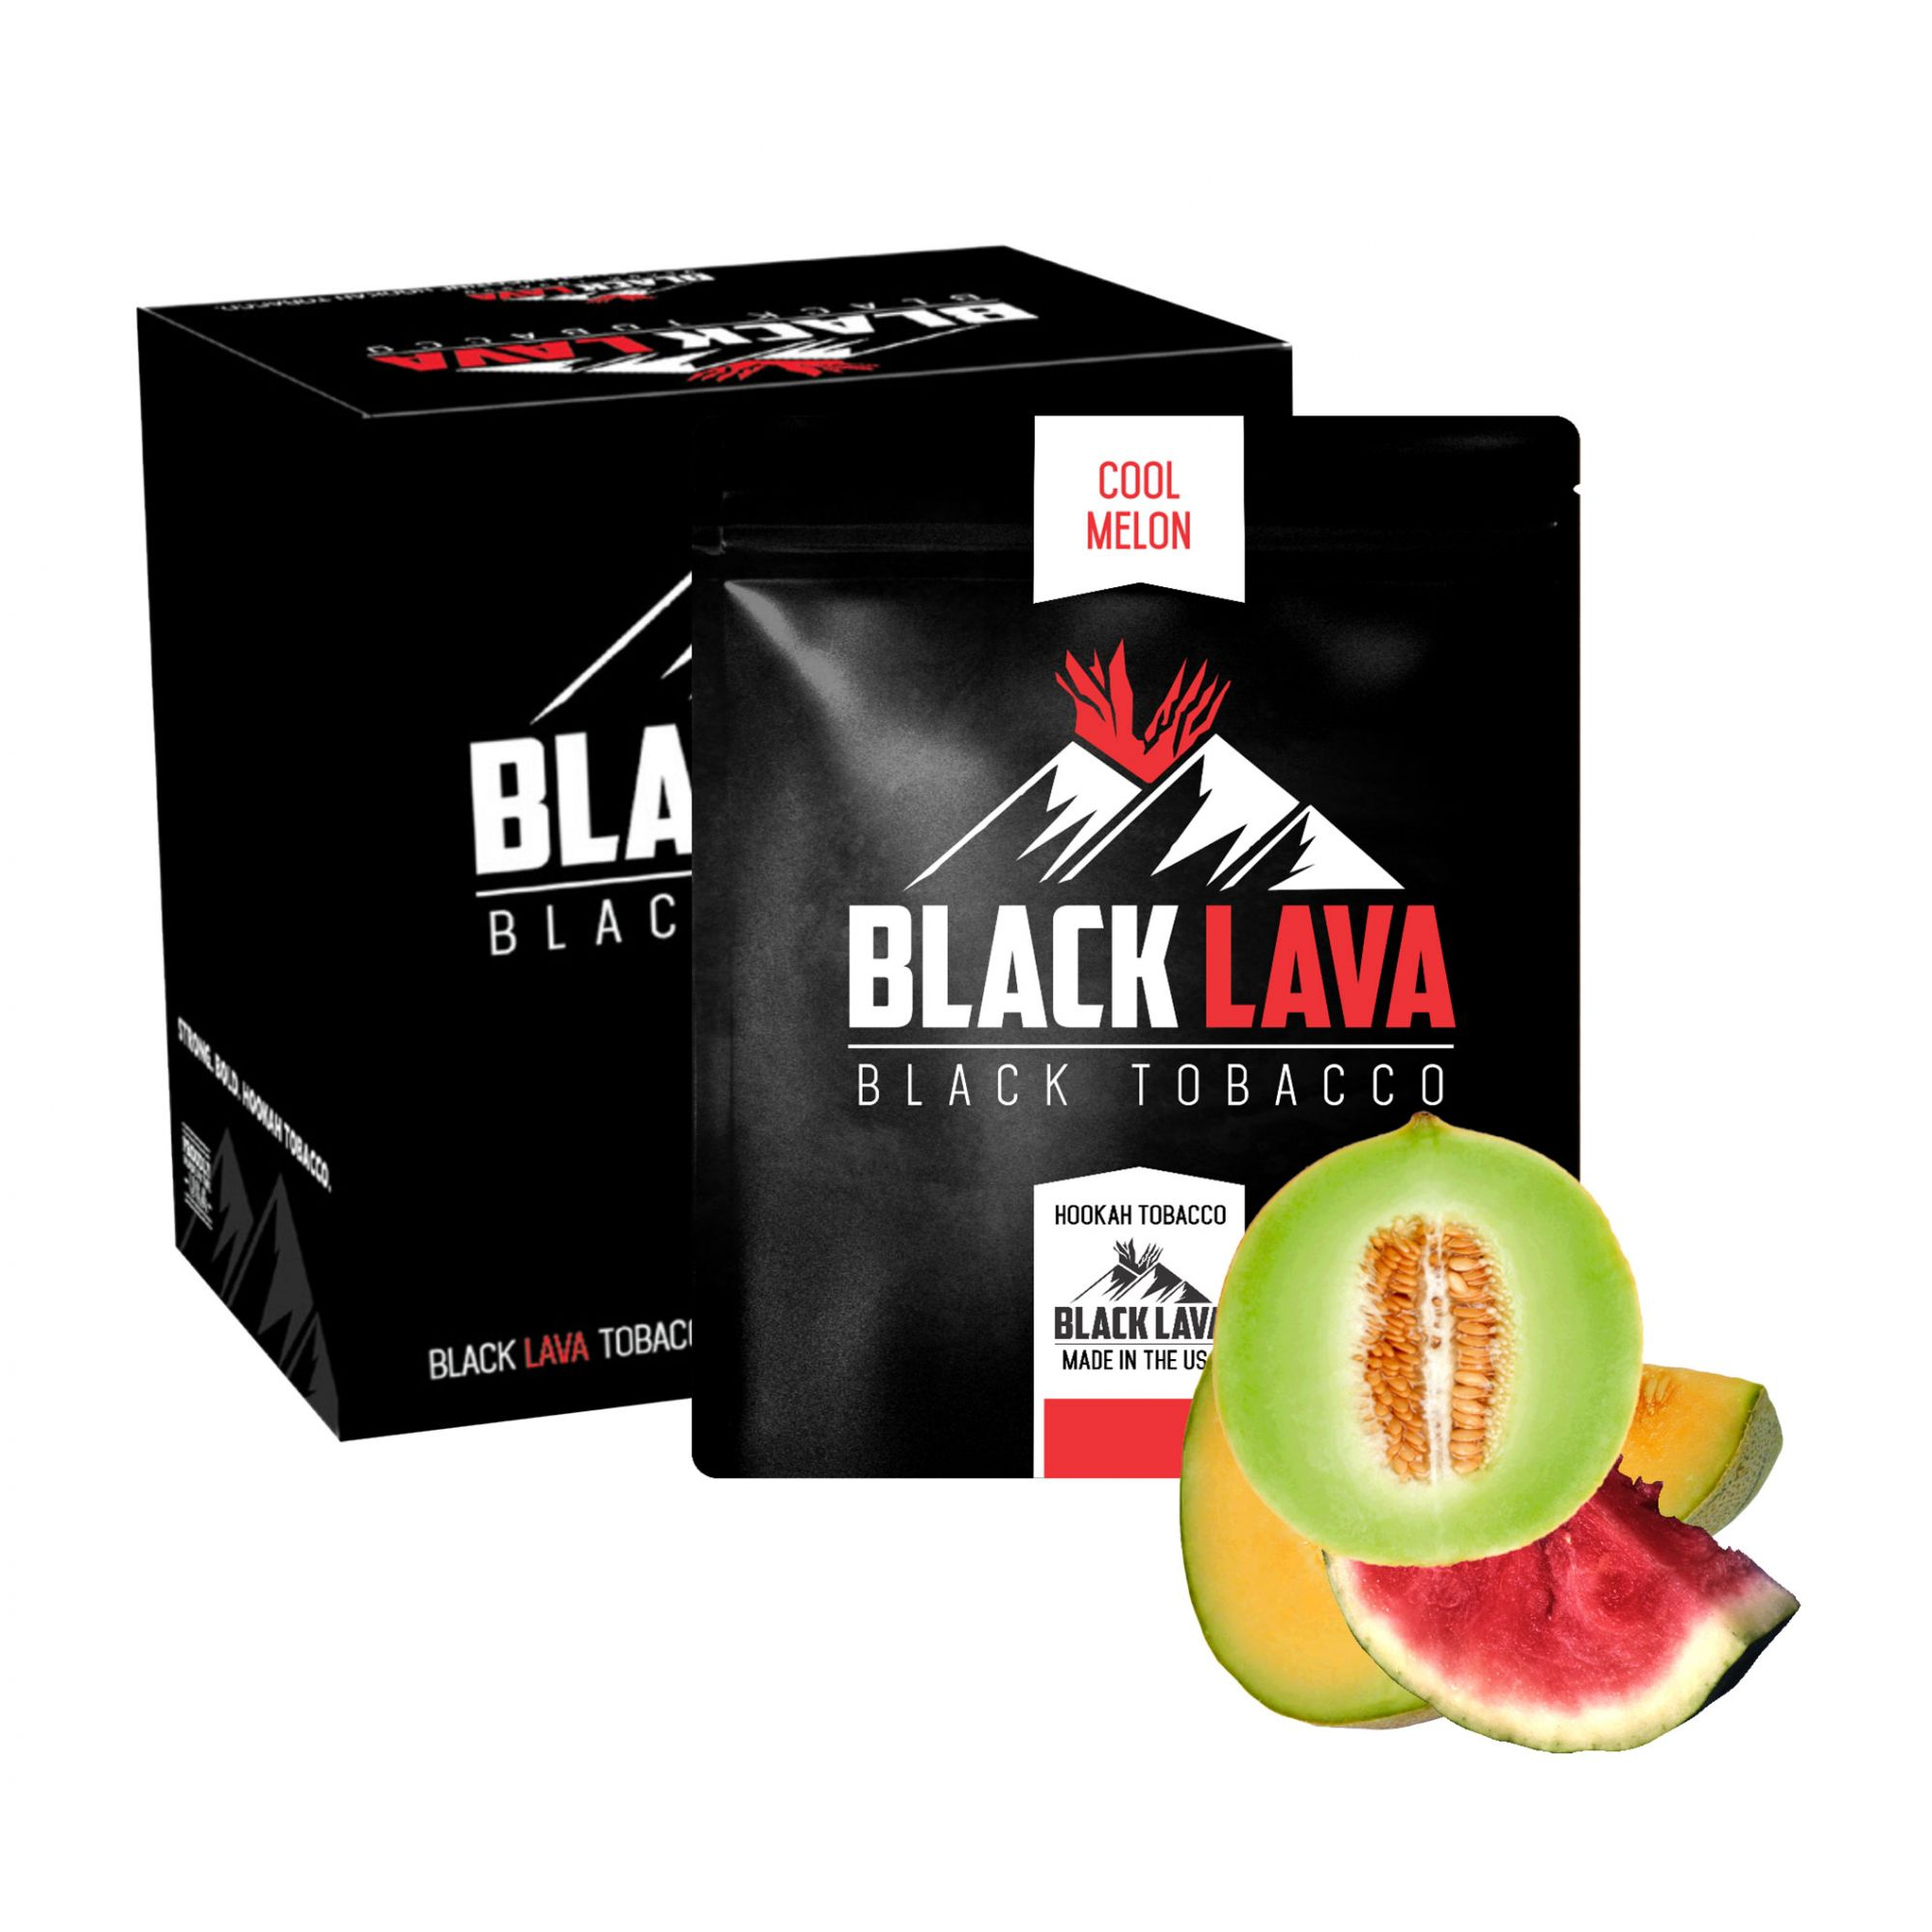 Black Lava - Cool Melon 200g